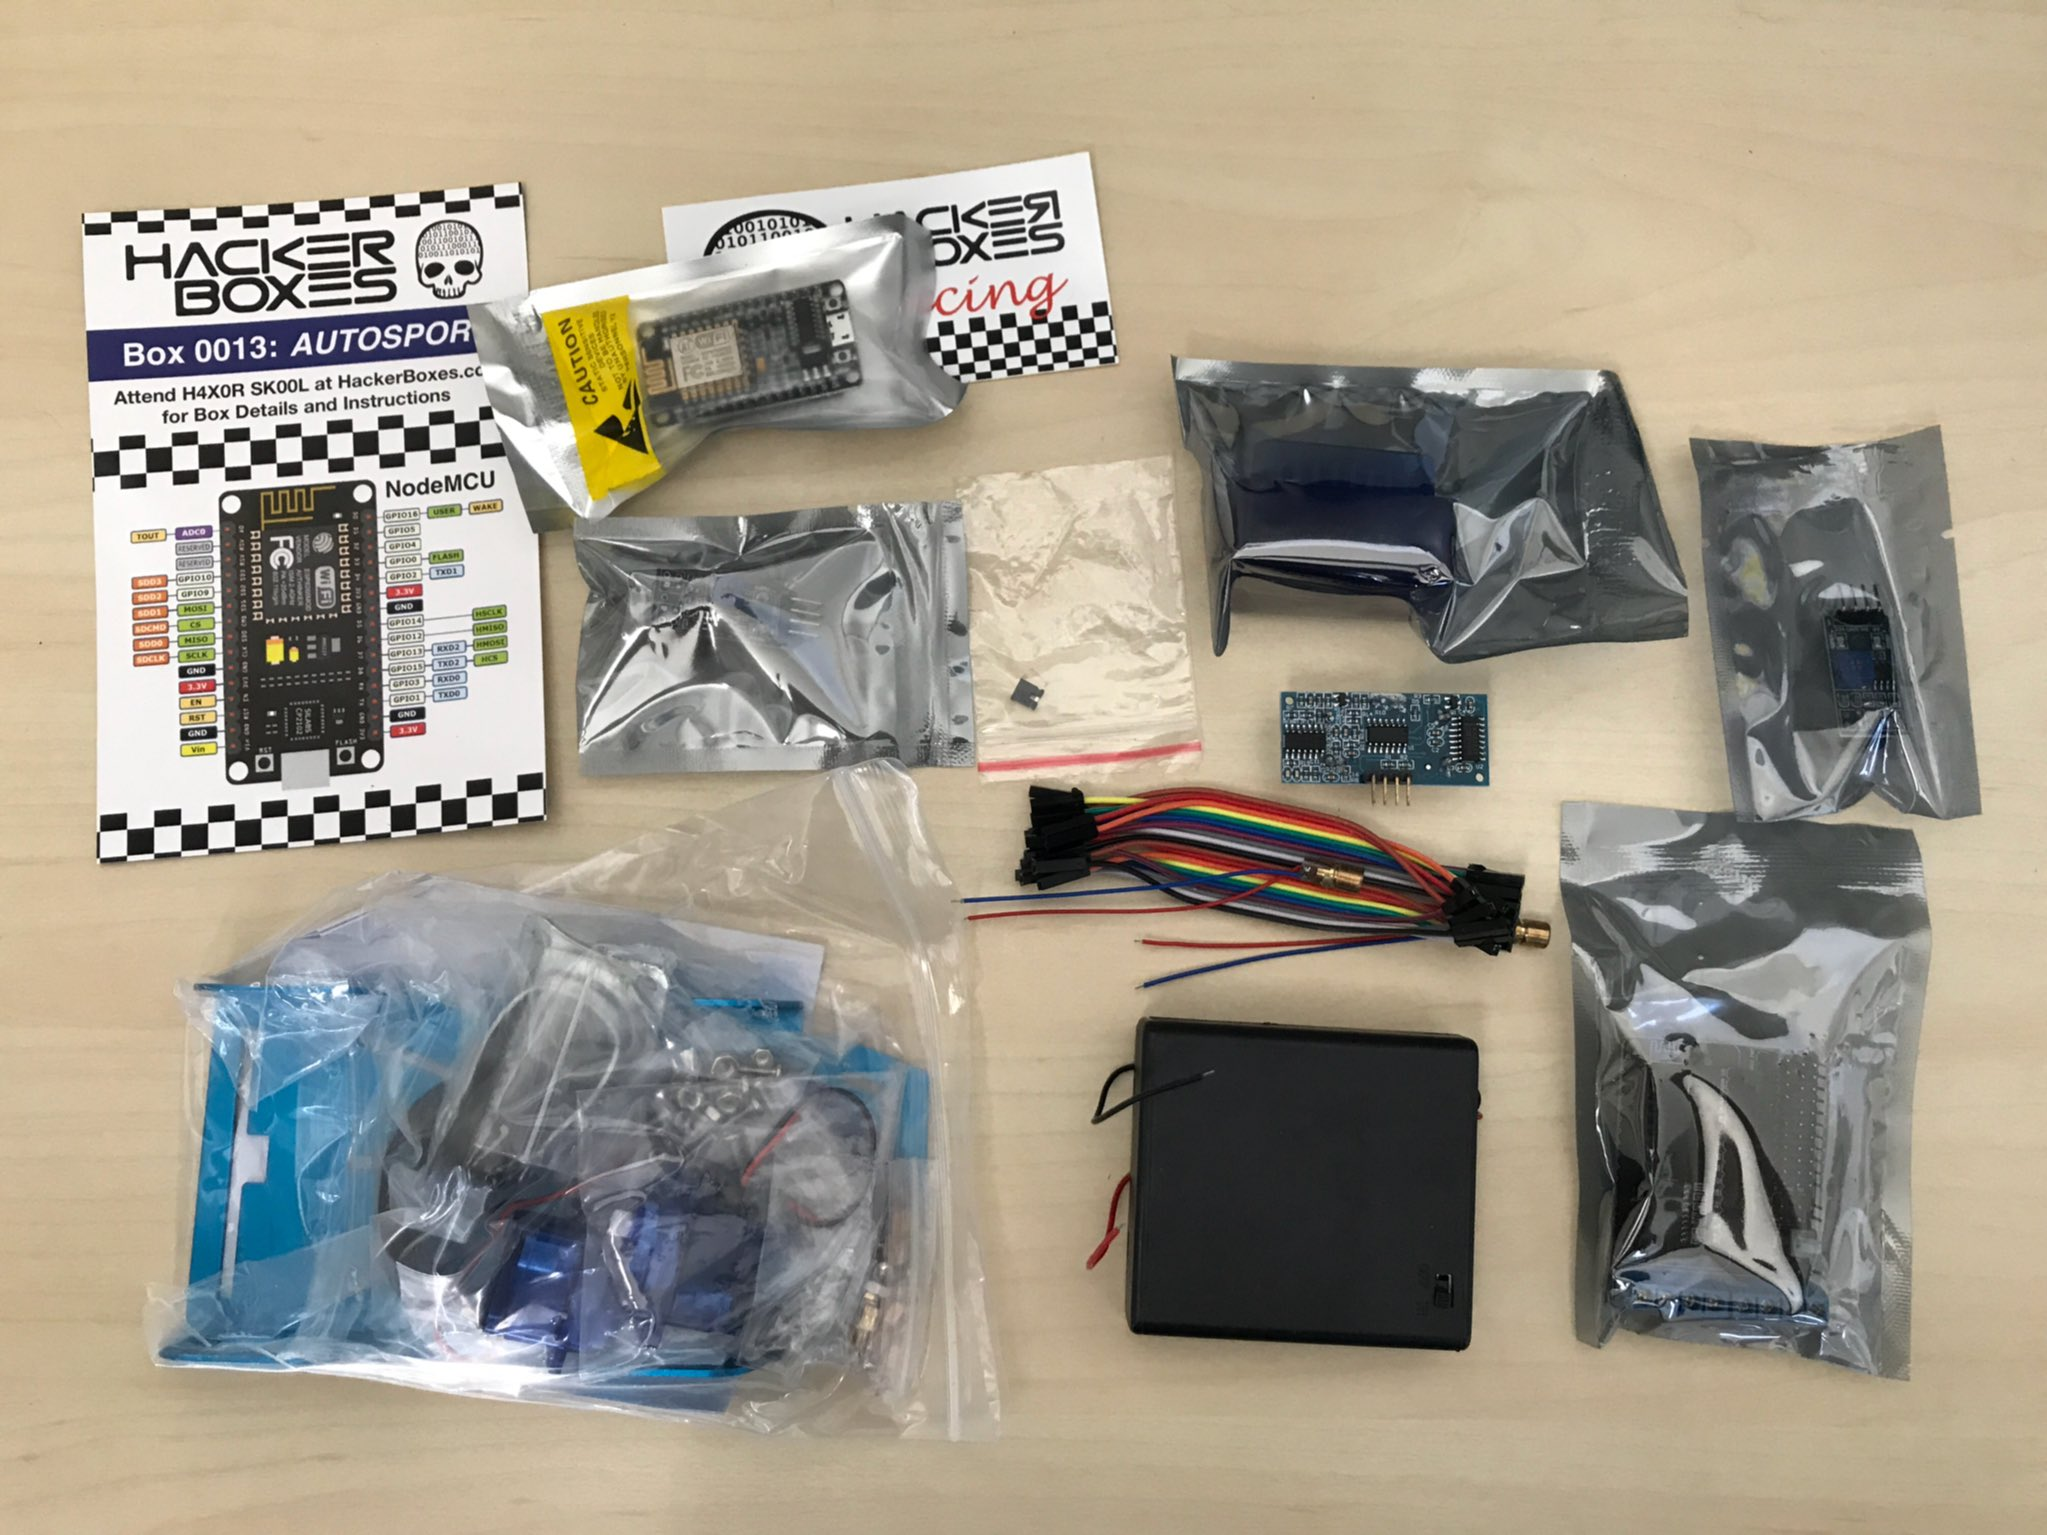 Contents of the HackerBox Autosport kit